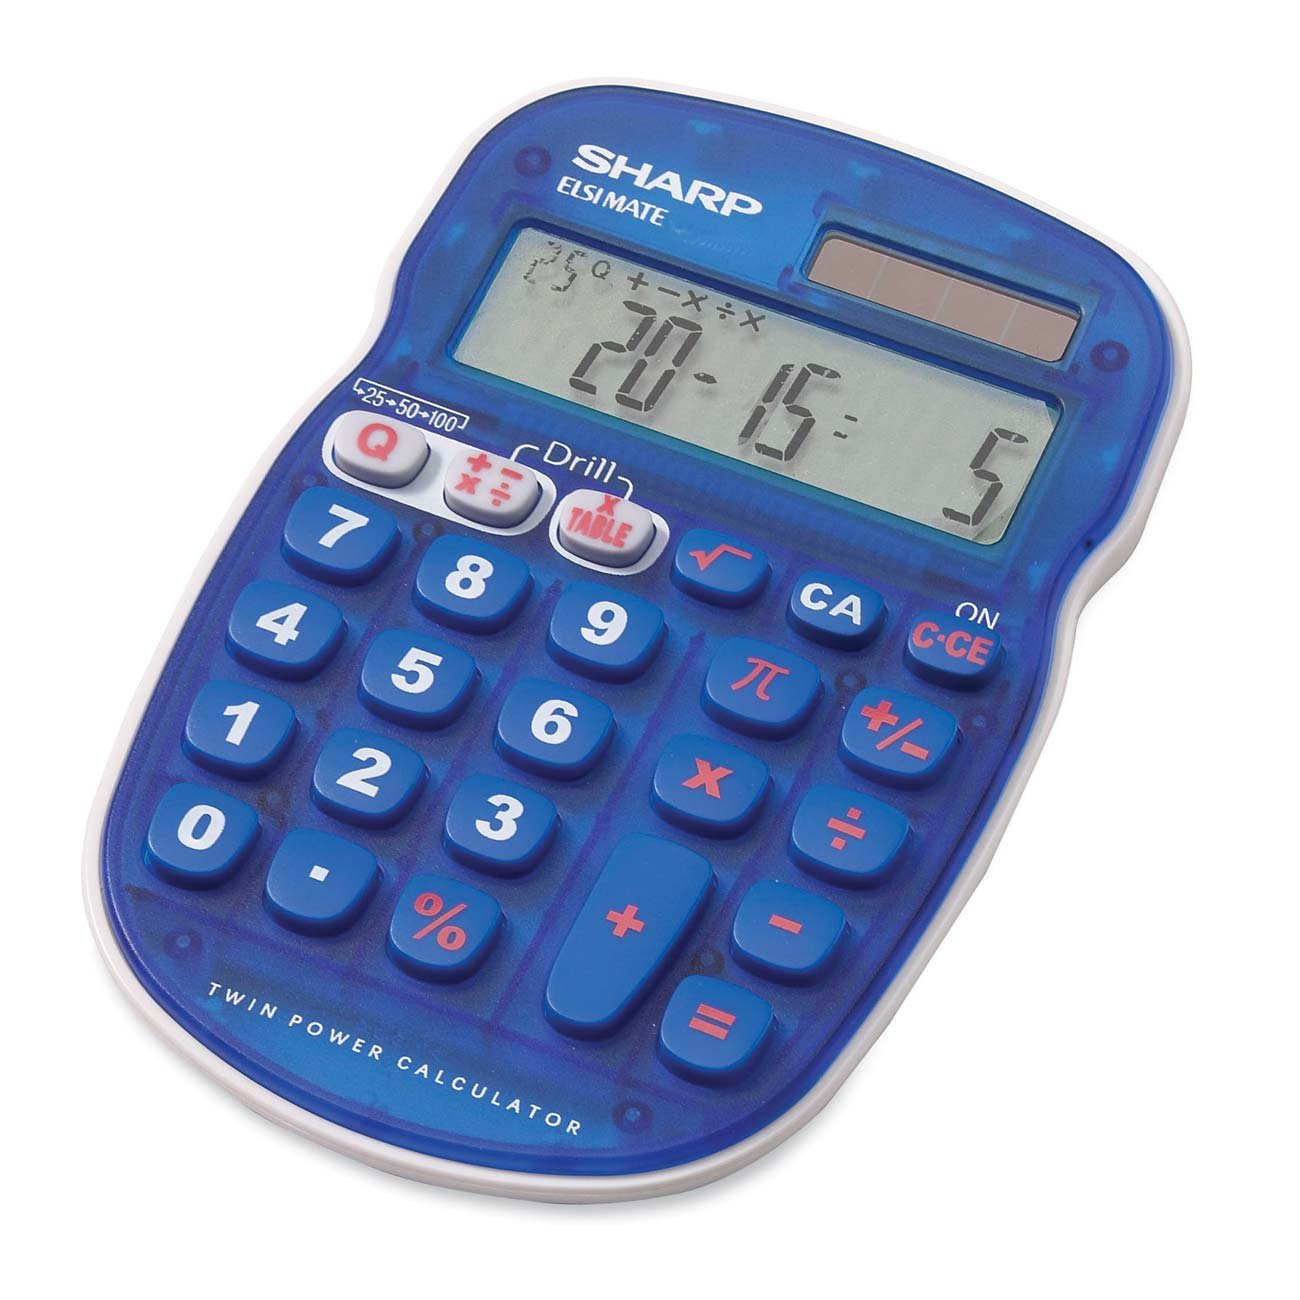 com sharp ho el sbbl standard function calculator com sharp ho el s25bbl standard function calculator calculator for kids electronics